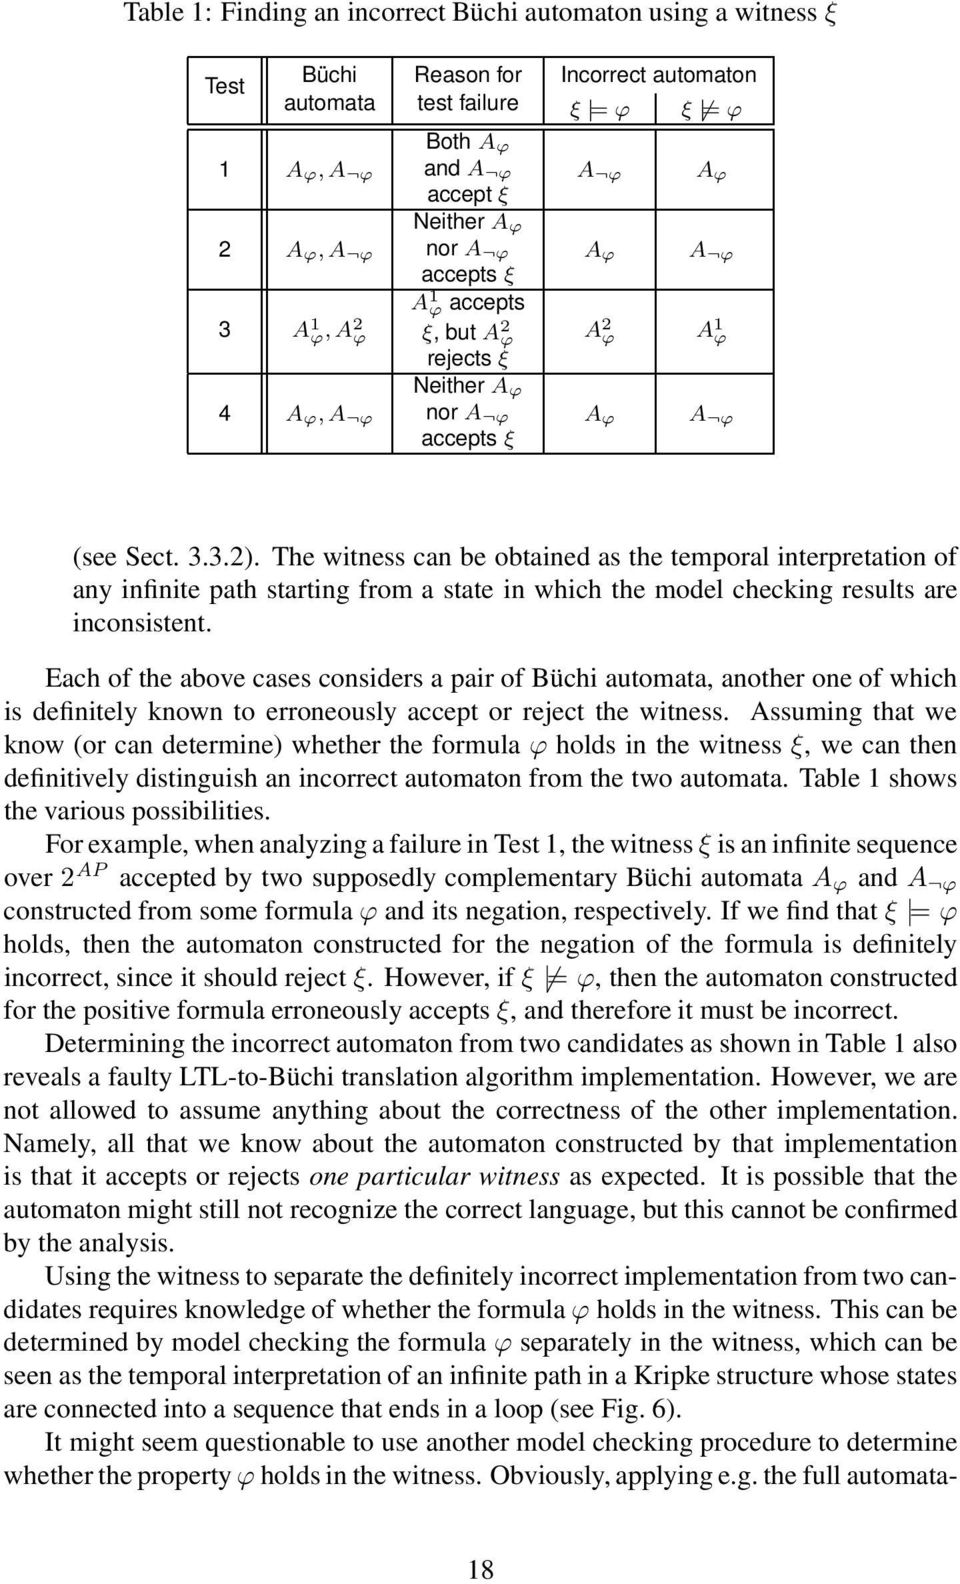 The witness can be obtained as the temporal interpretation of any infinite path starting from a state in which the model checking results are inconsistent.